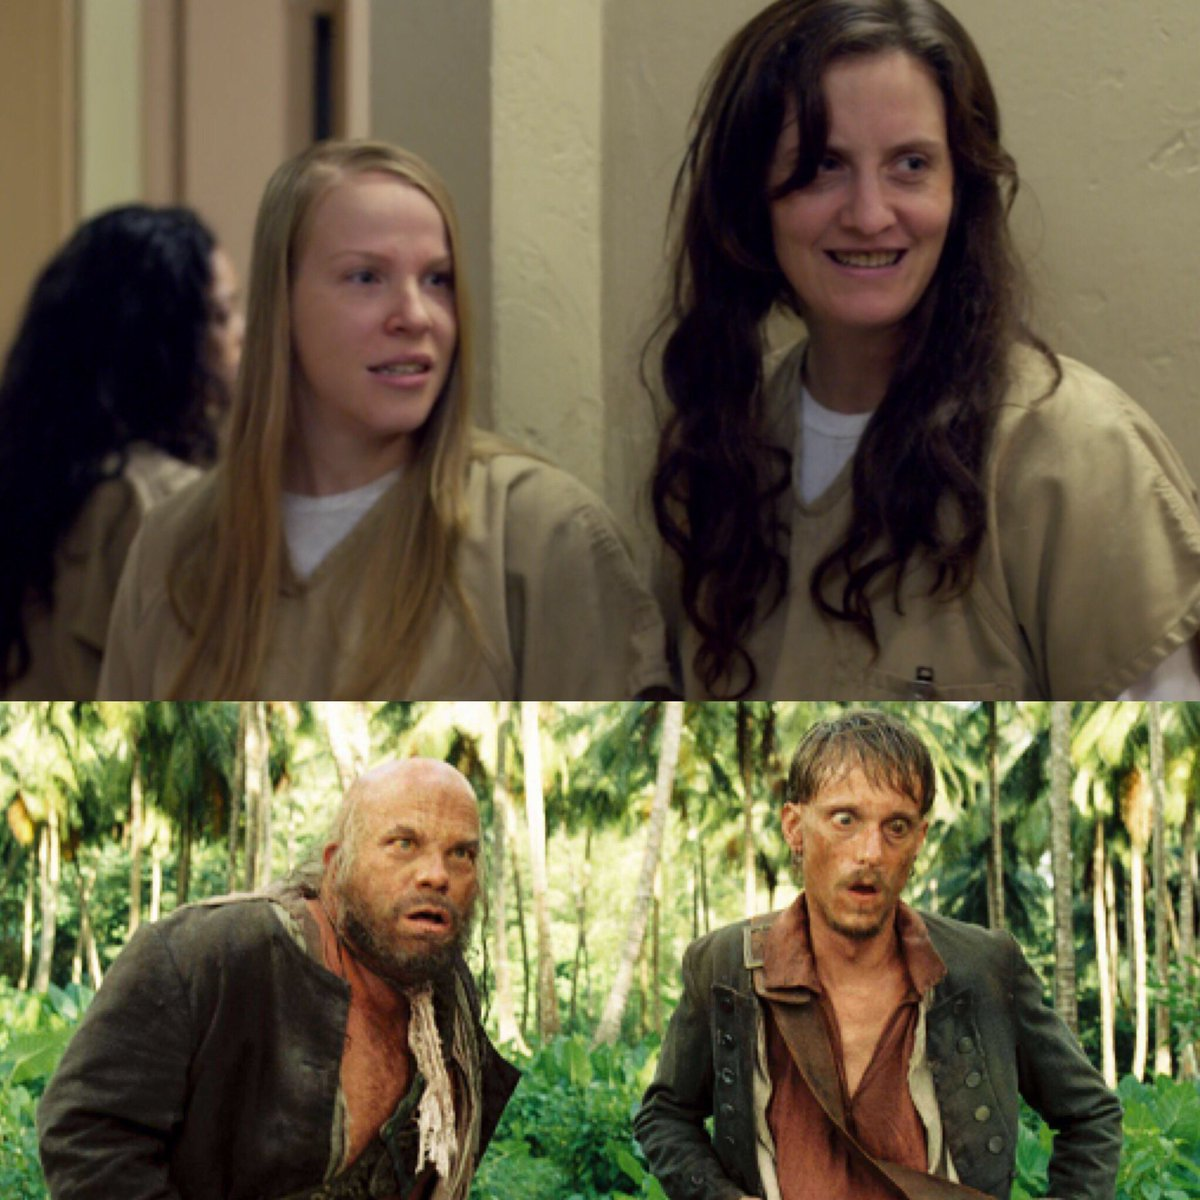 I figured out the recipe for the comic relief duo = bad teeth and height difference  #OITNB5 #POTC5 <br>http://pic.twitter.com/cVHAaRK7ae